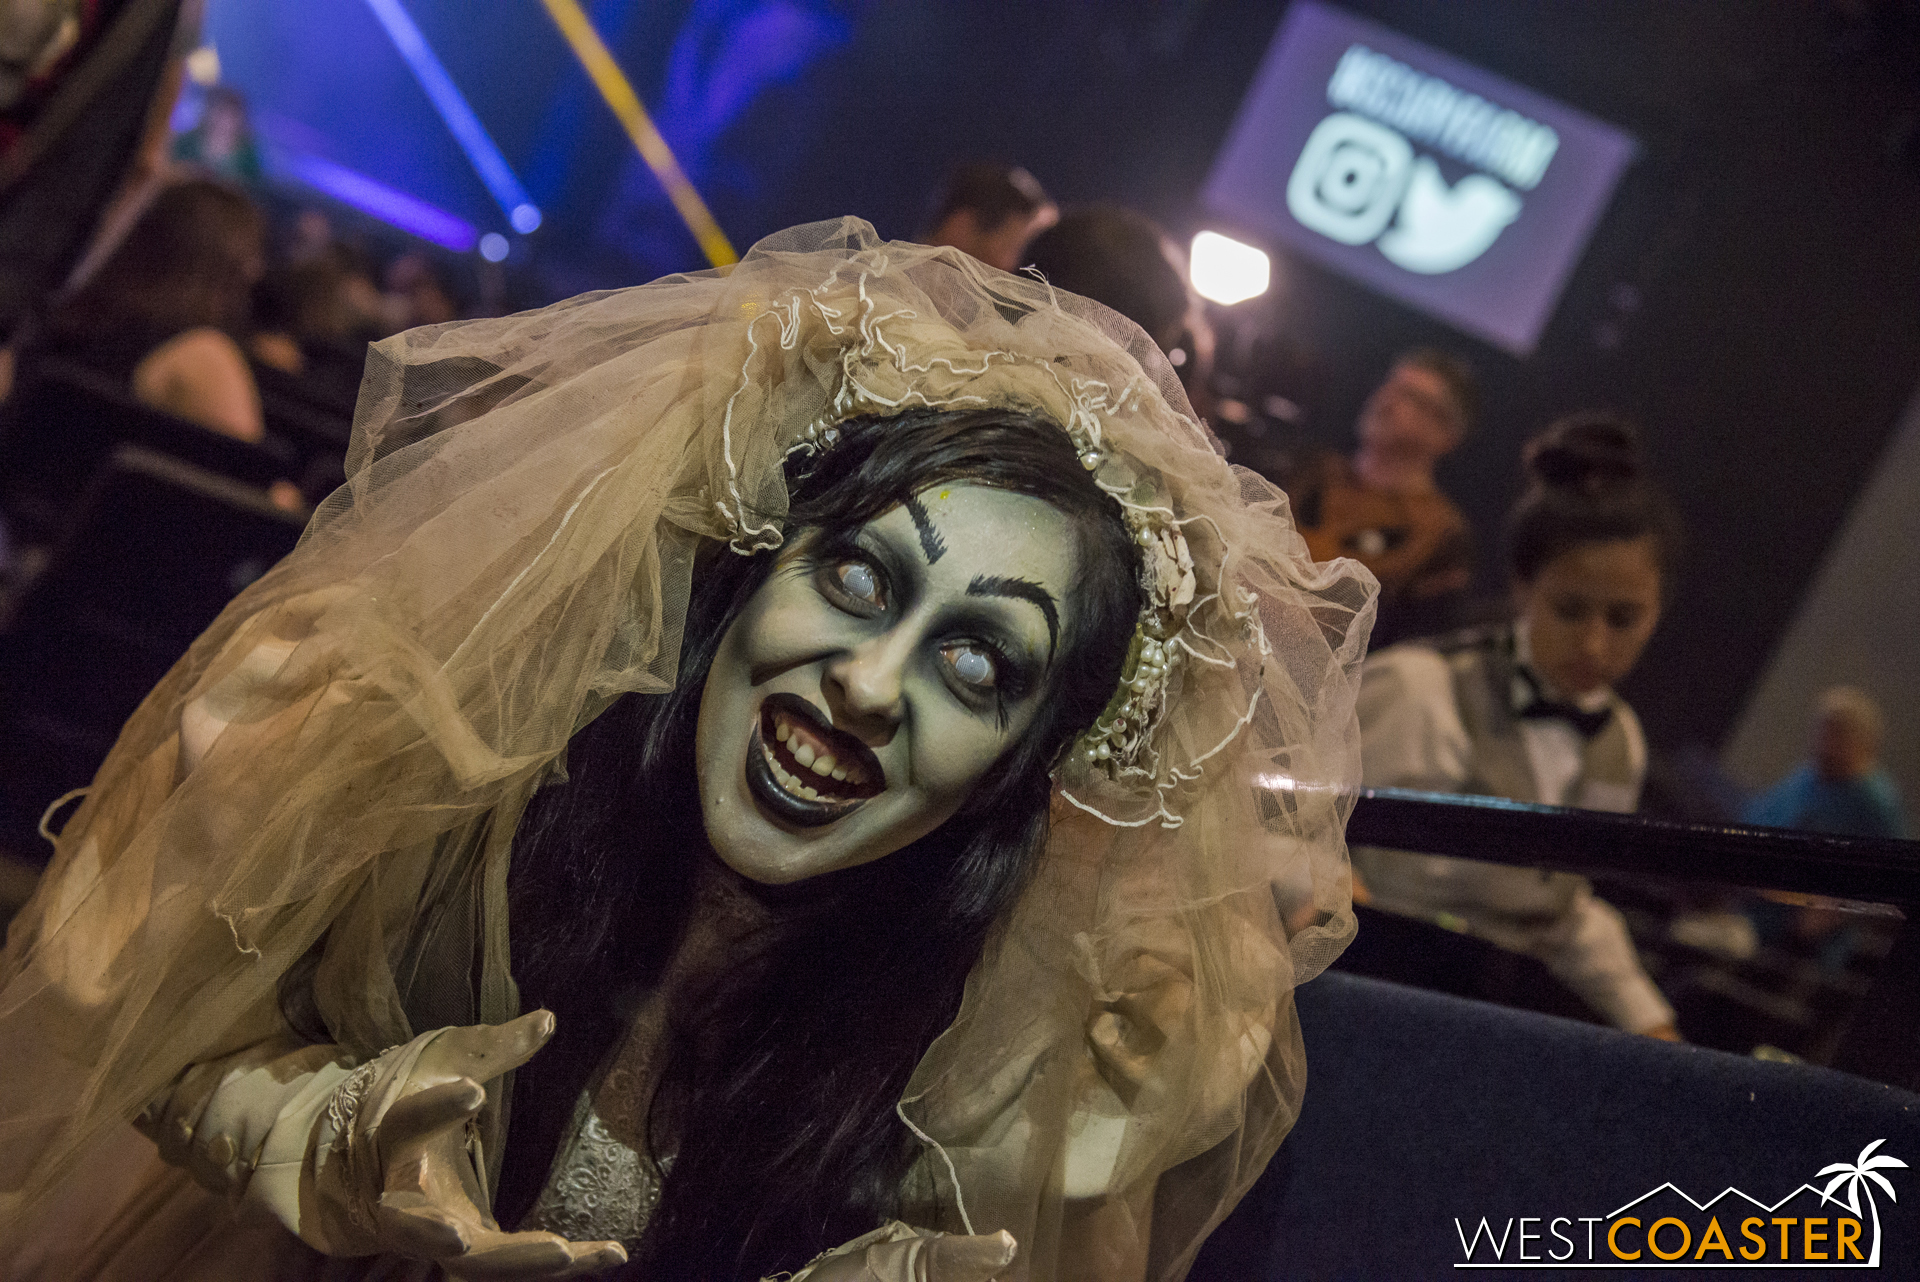 And of course, it's not Scary Farm with The Bride, who has become an unofficial event icon almost as recognizable (and certainly more terrifying) as the Green Witch herself!